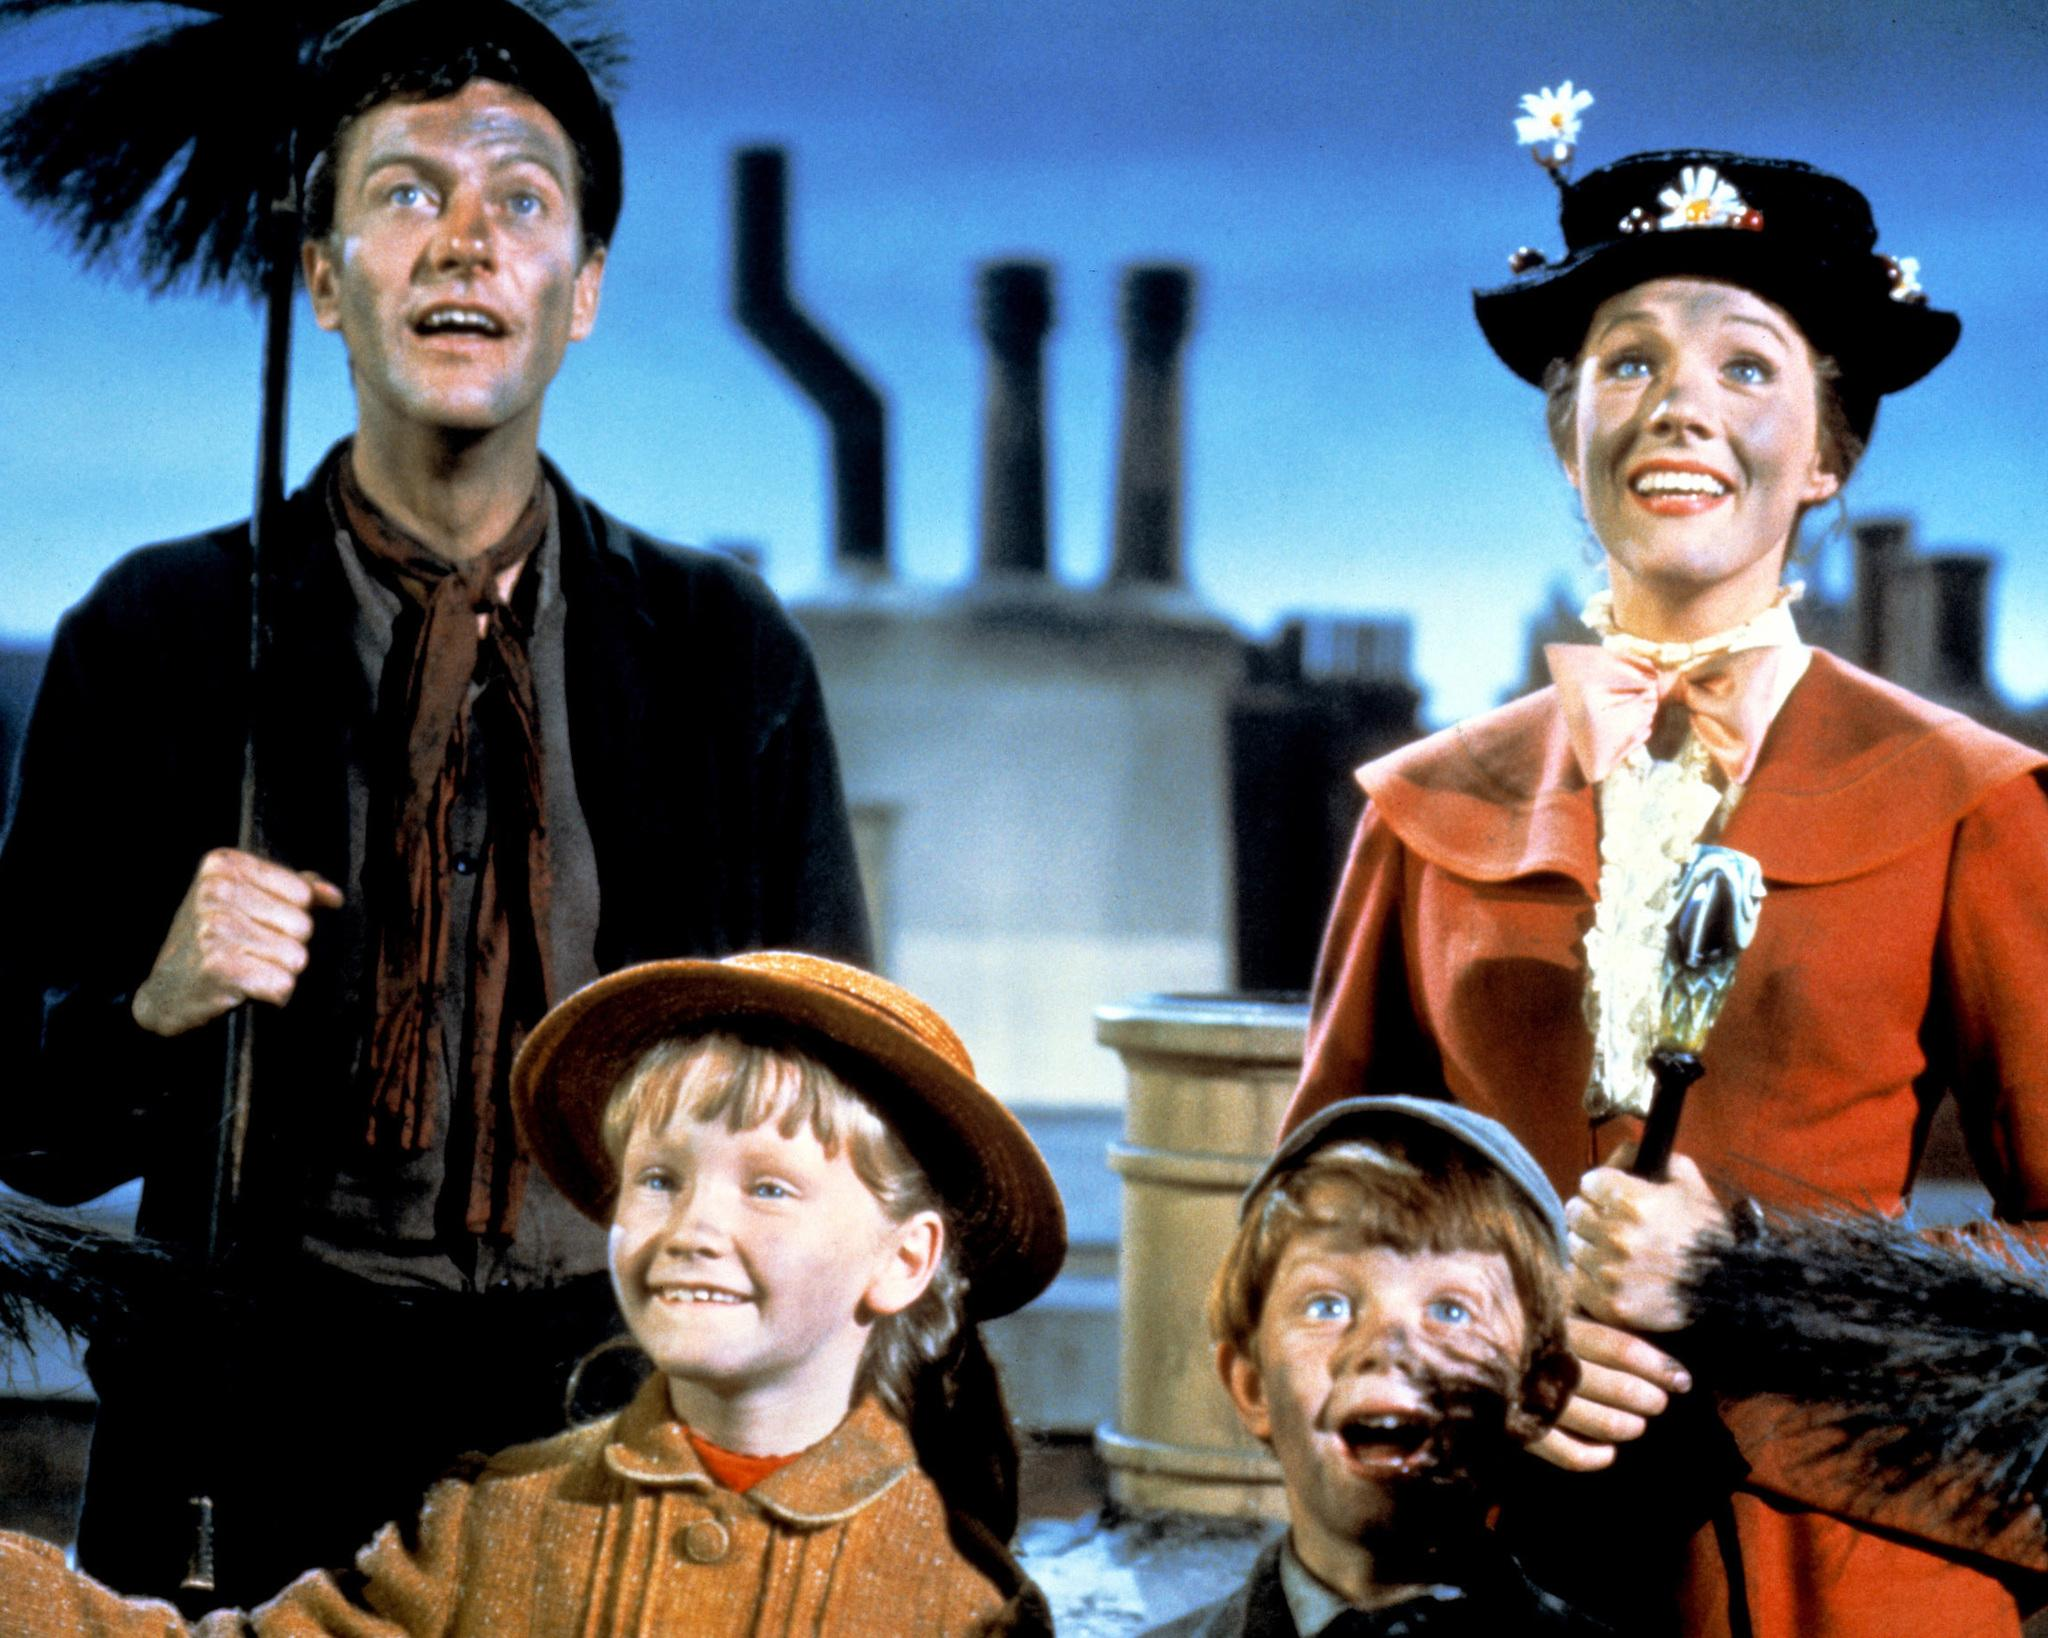 dick-van-dyke,-karen-dotrice-and-matthew-garber-at-event-of-mary-poppins-(1964)-large-picture